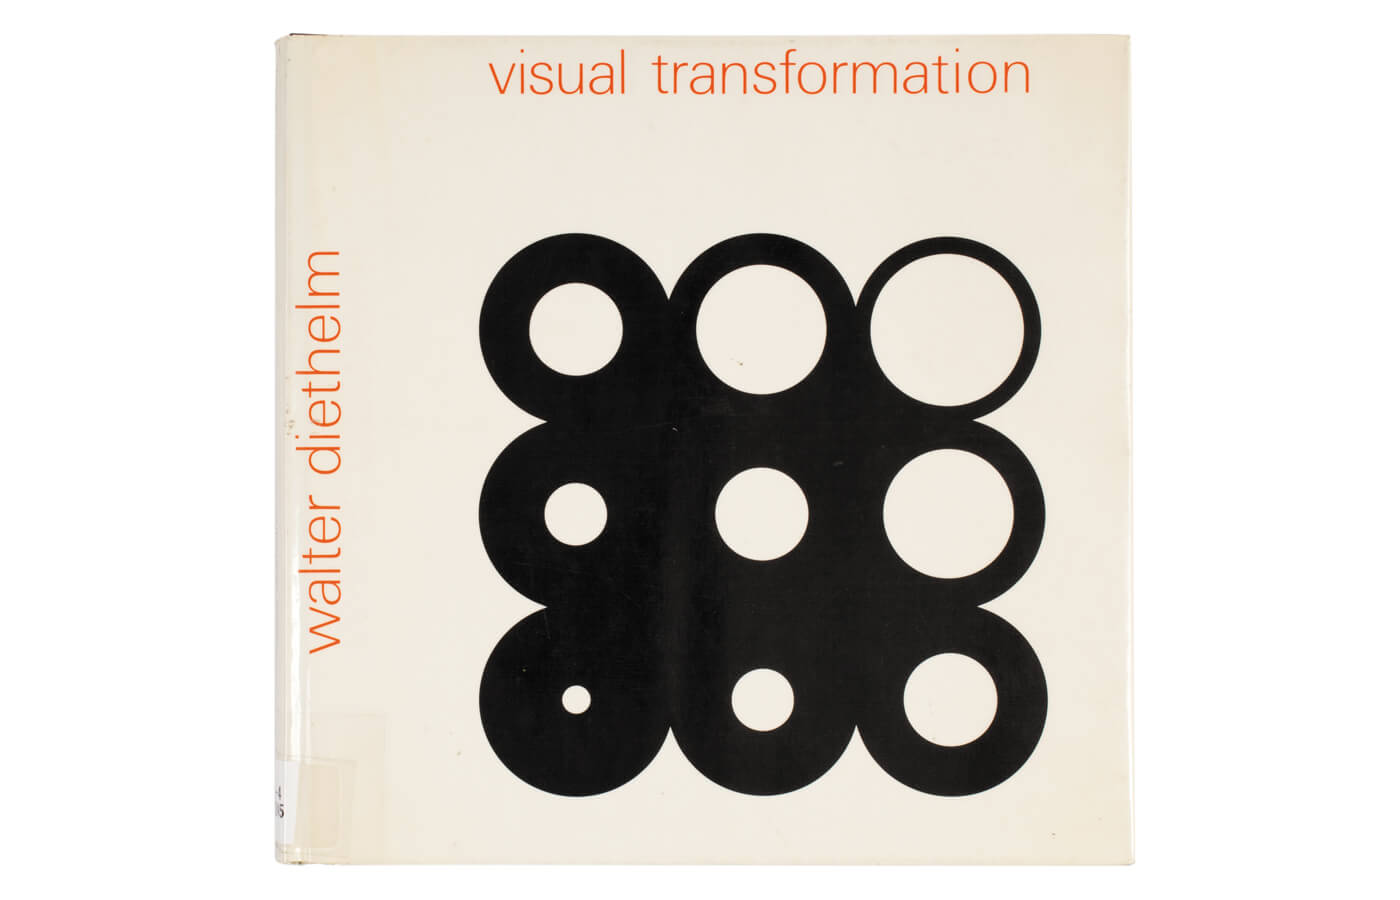 visual transformation